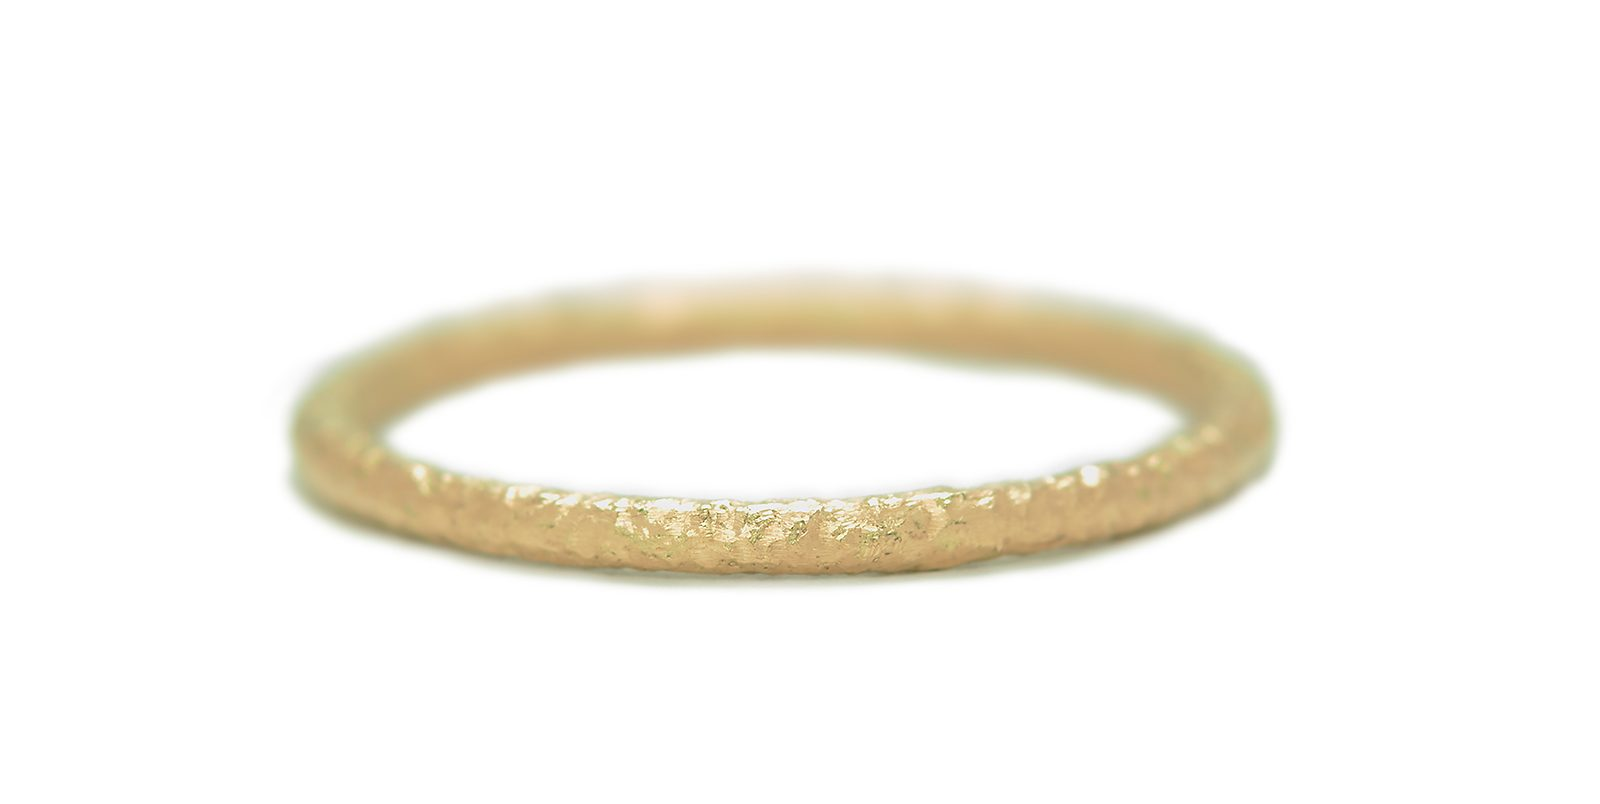 Textured Ring, Slim 1.5mm